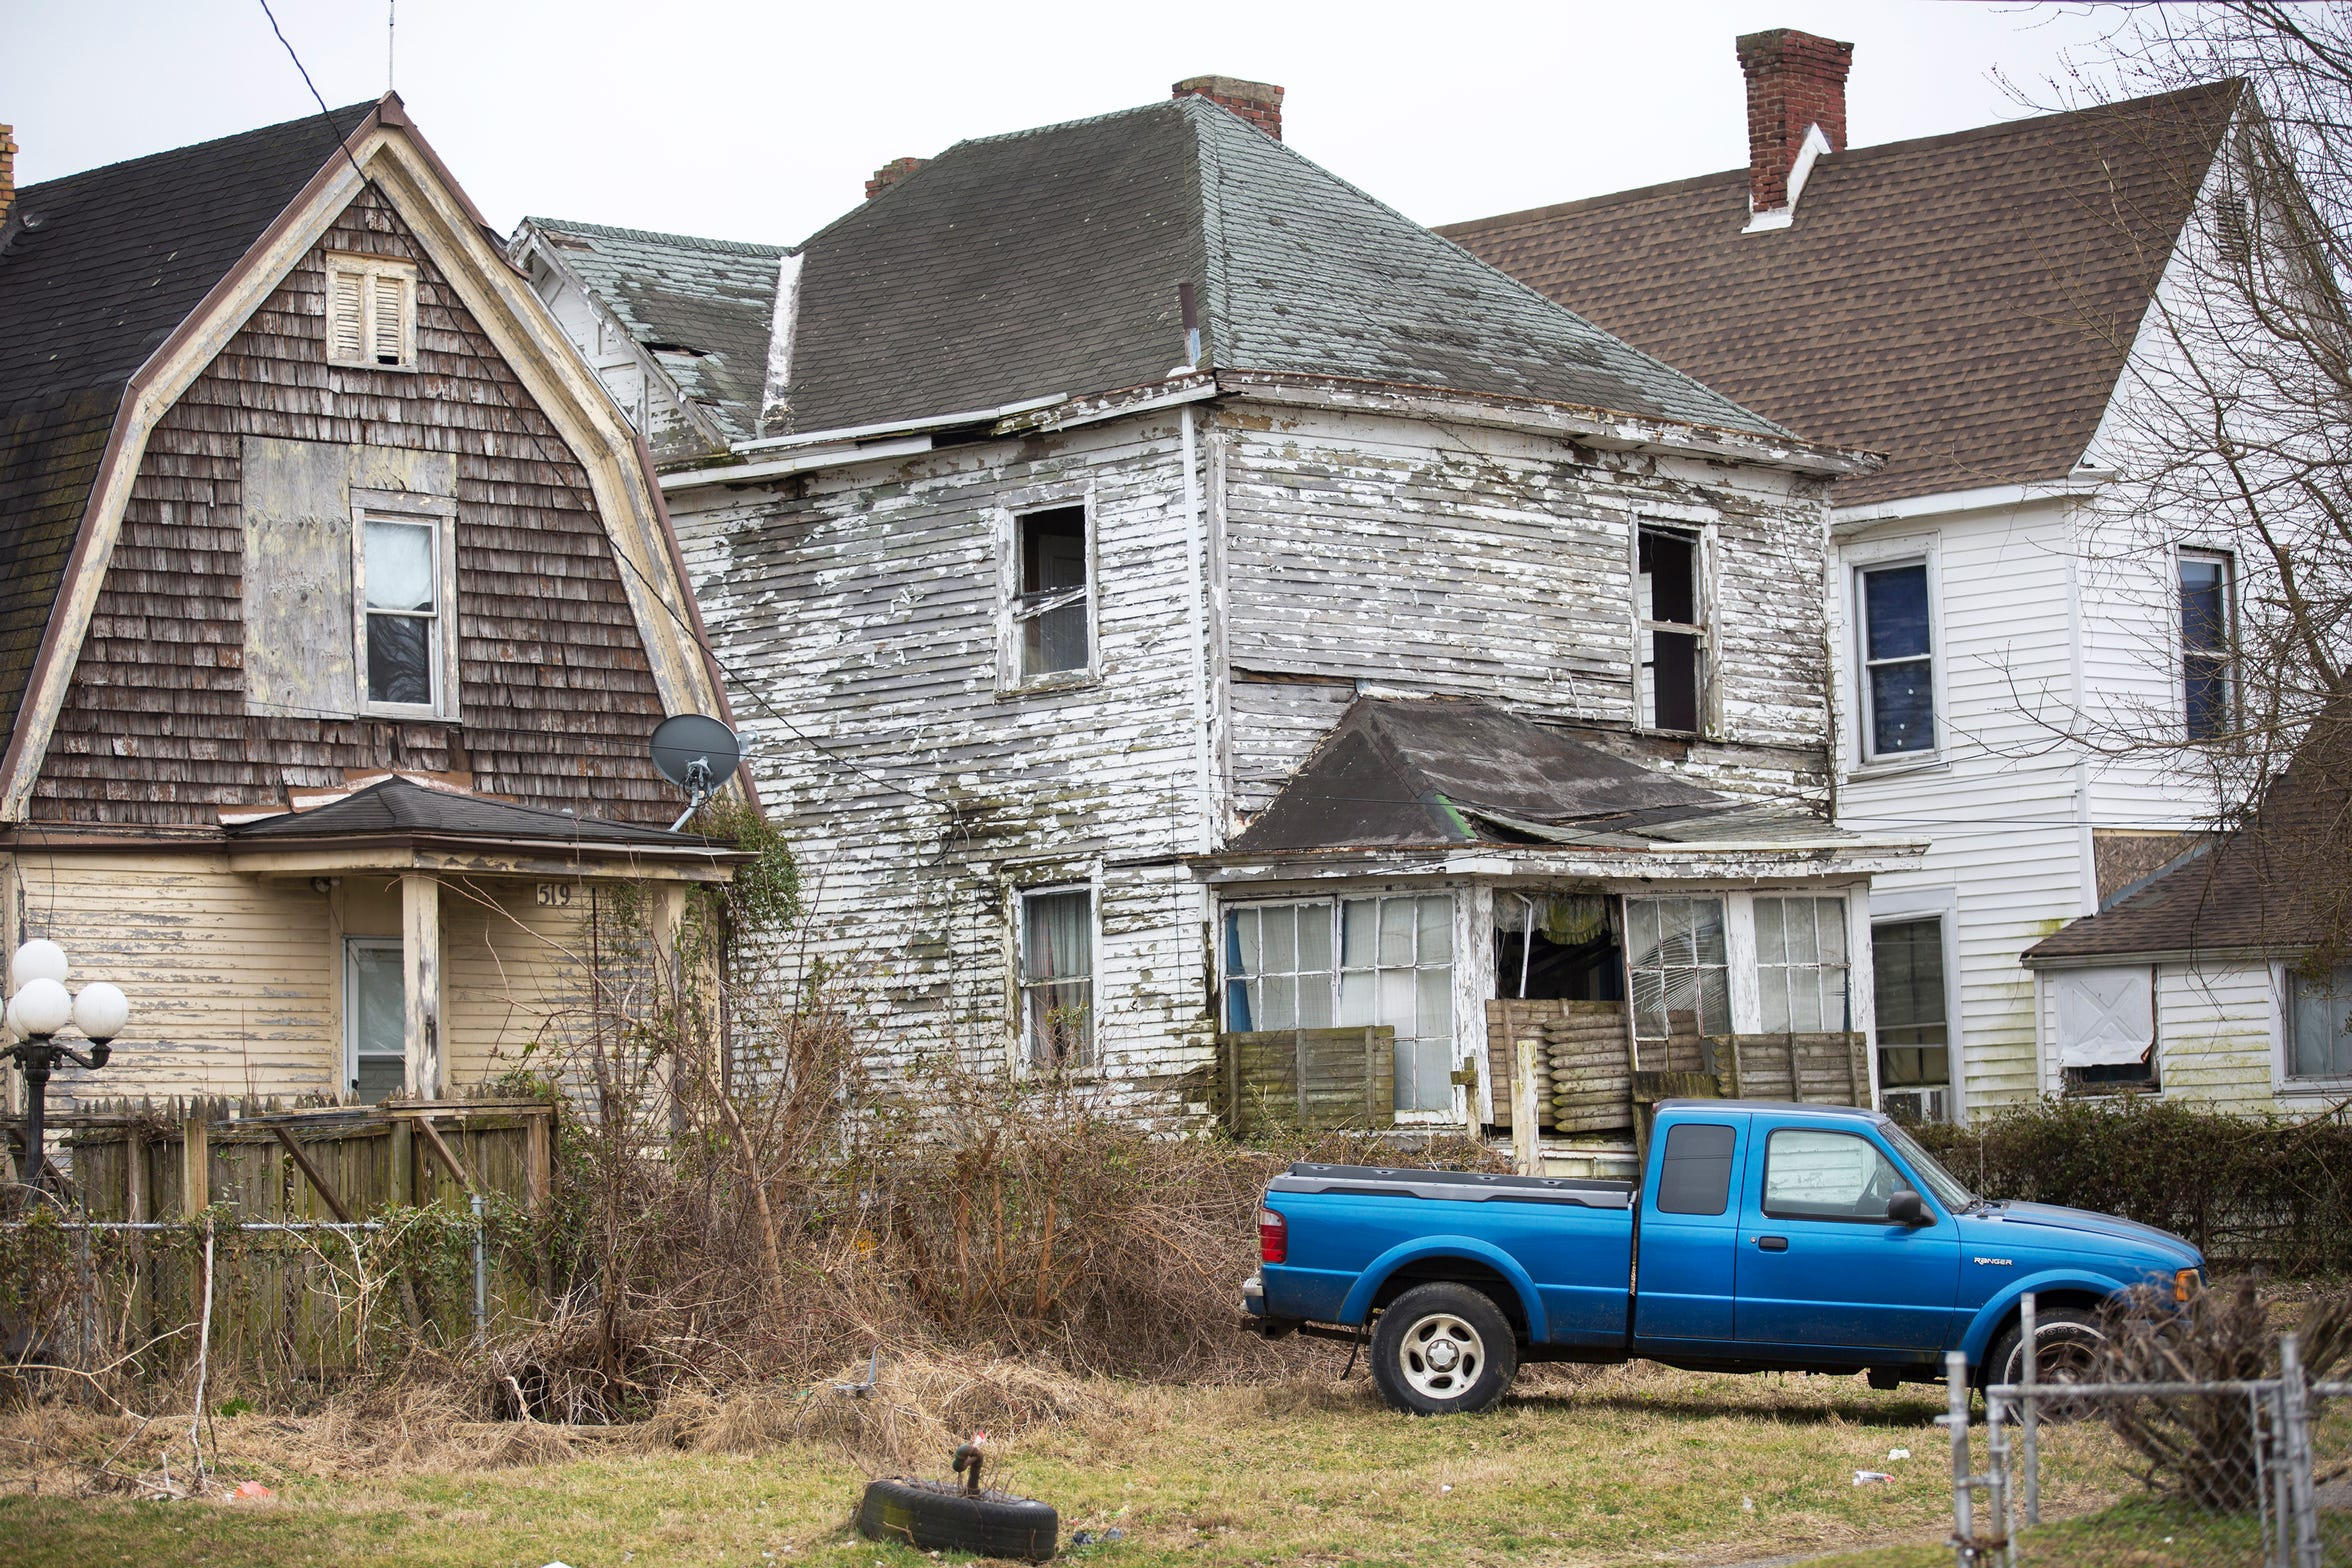 A low income neighborhood in Portsmouth, Ohio. Several of the homes are abandoned and boarded up.